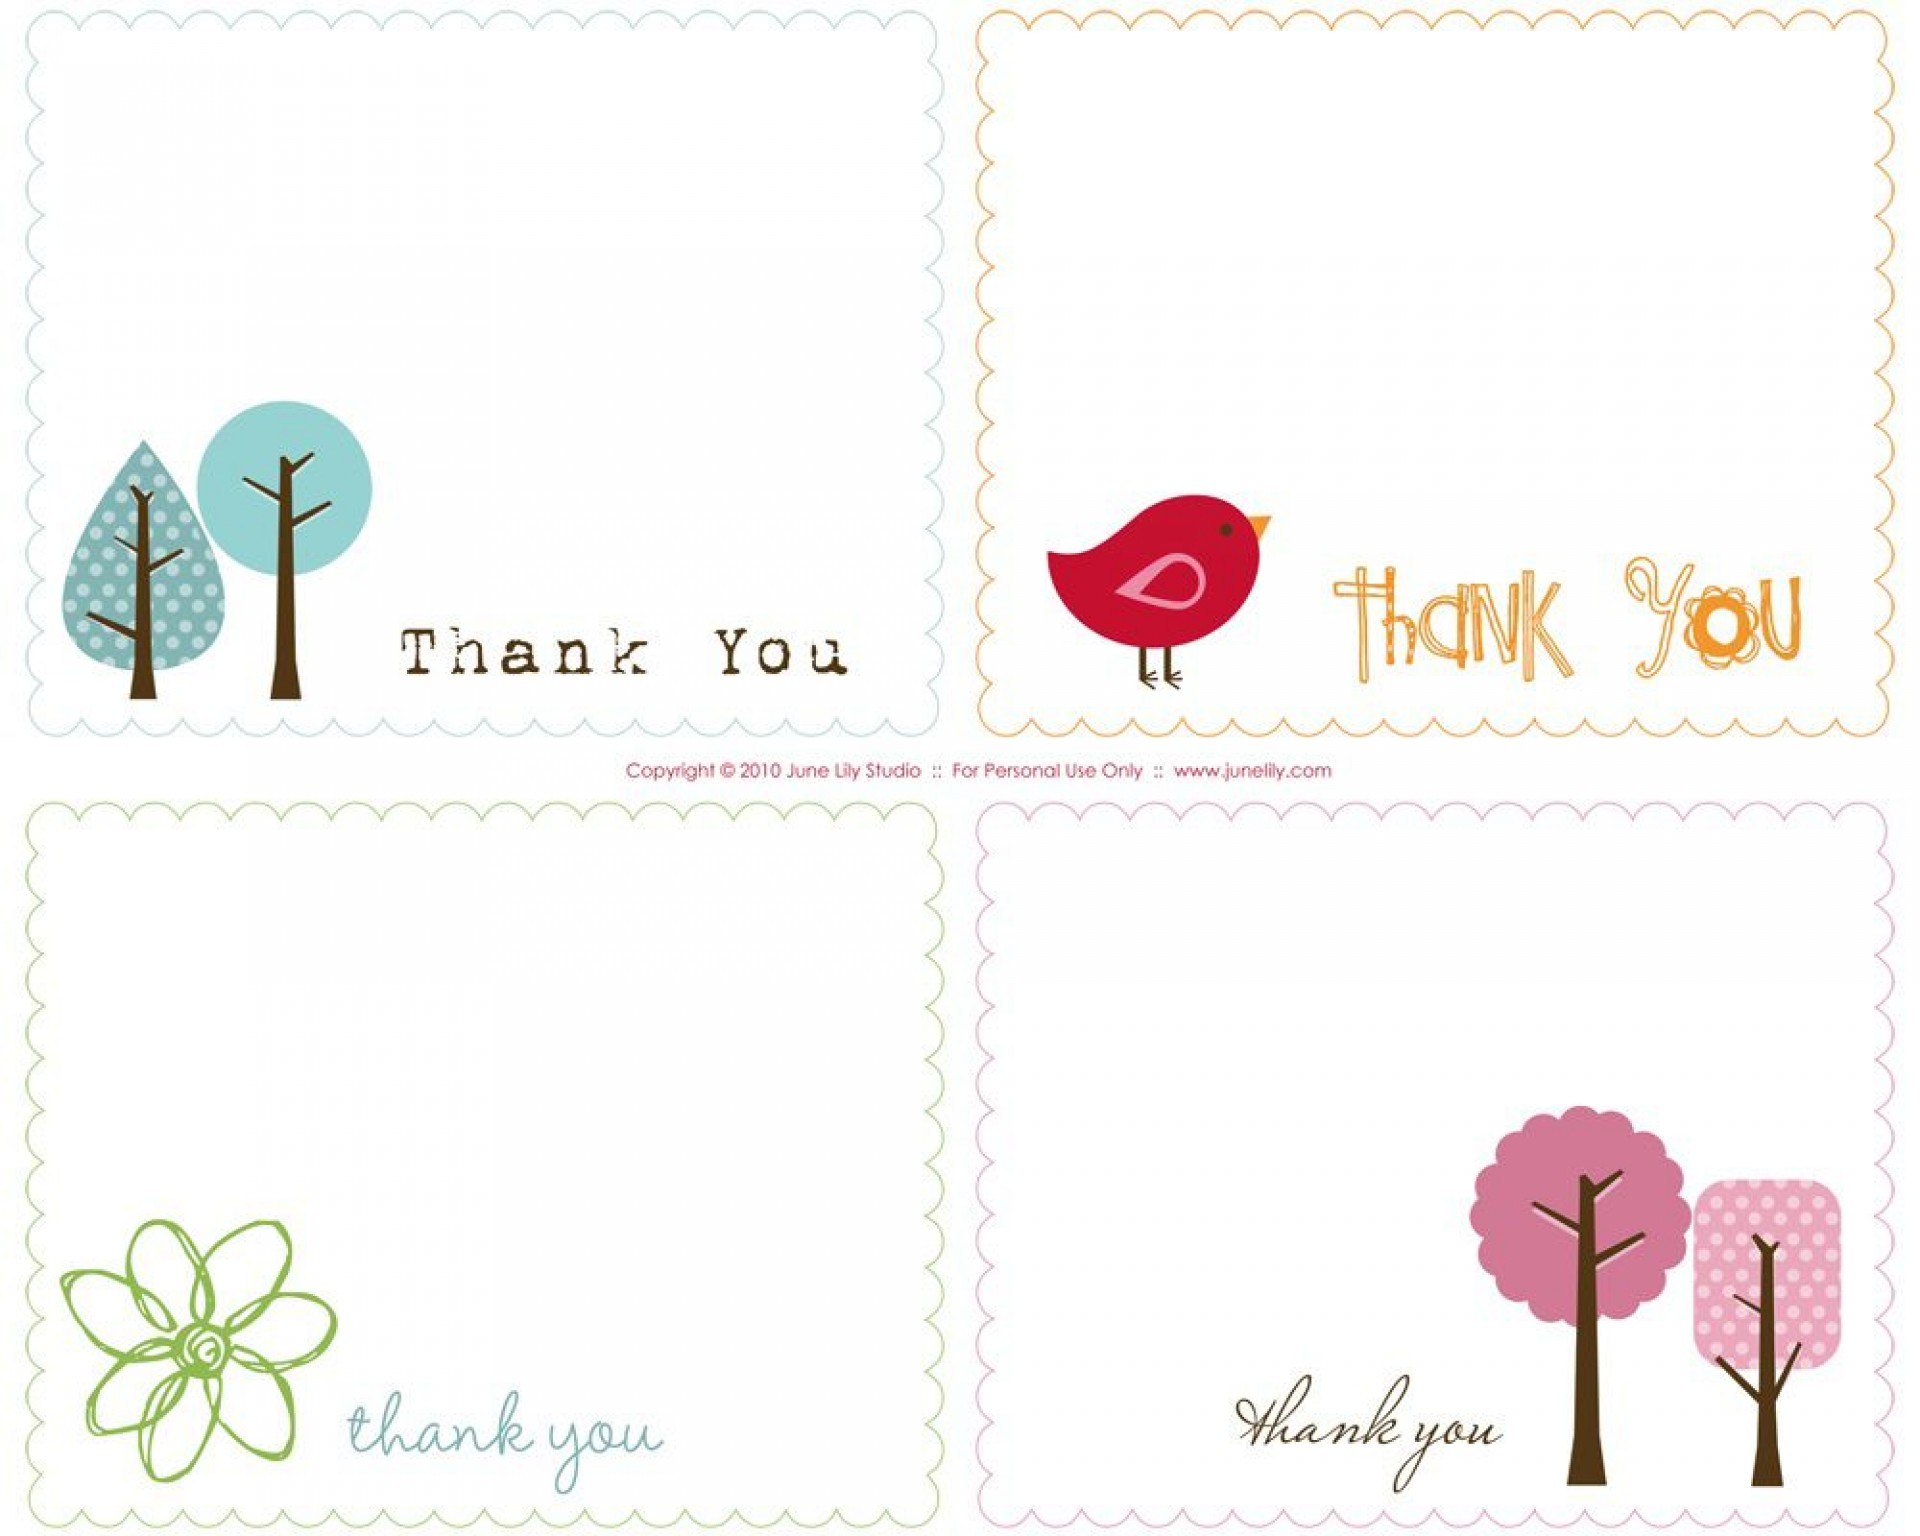 003 Awful Free Thank You Card Template High Definition  Google Doc For Funeral Microsoft Word1920